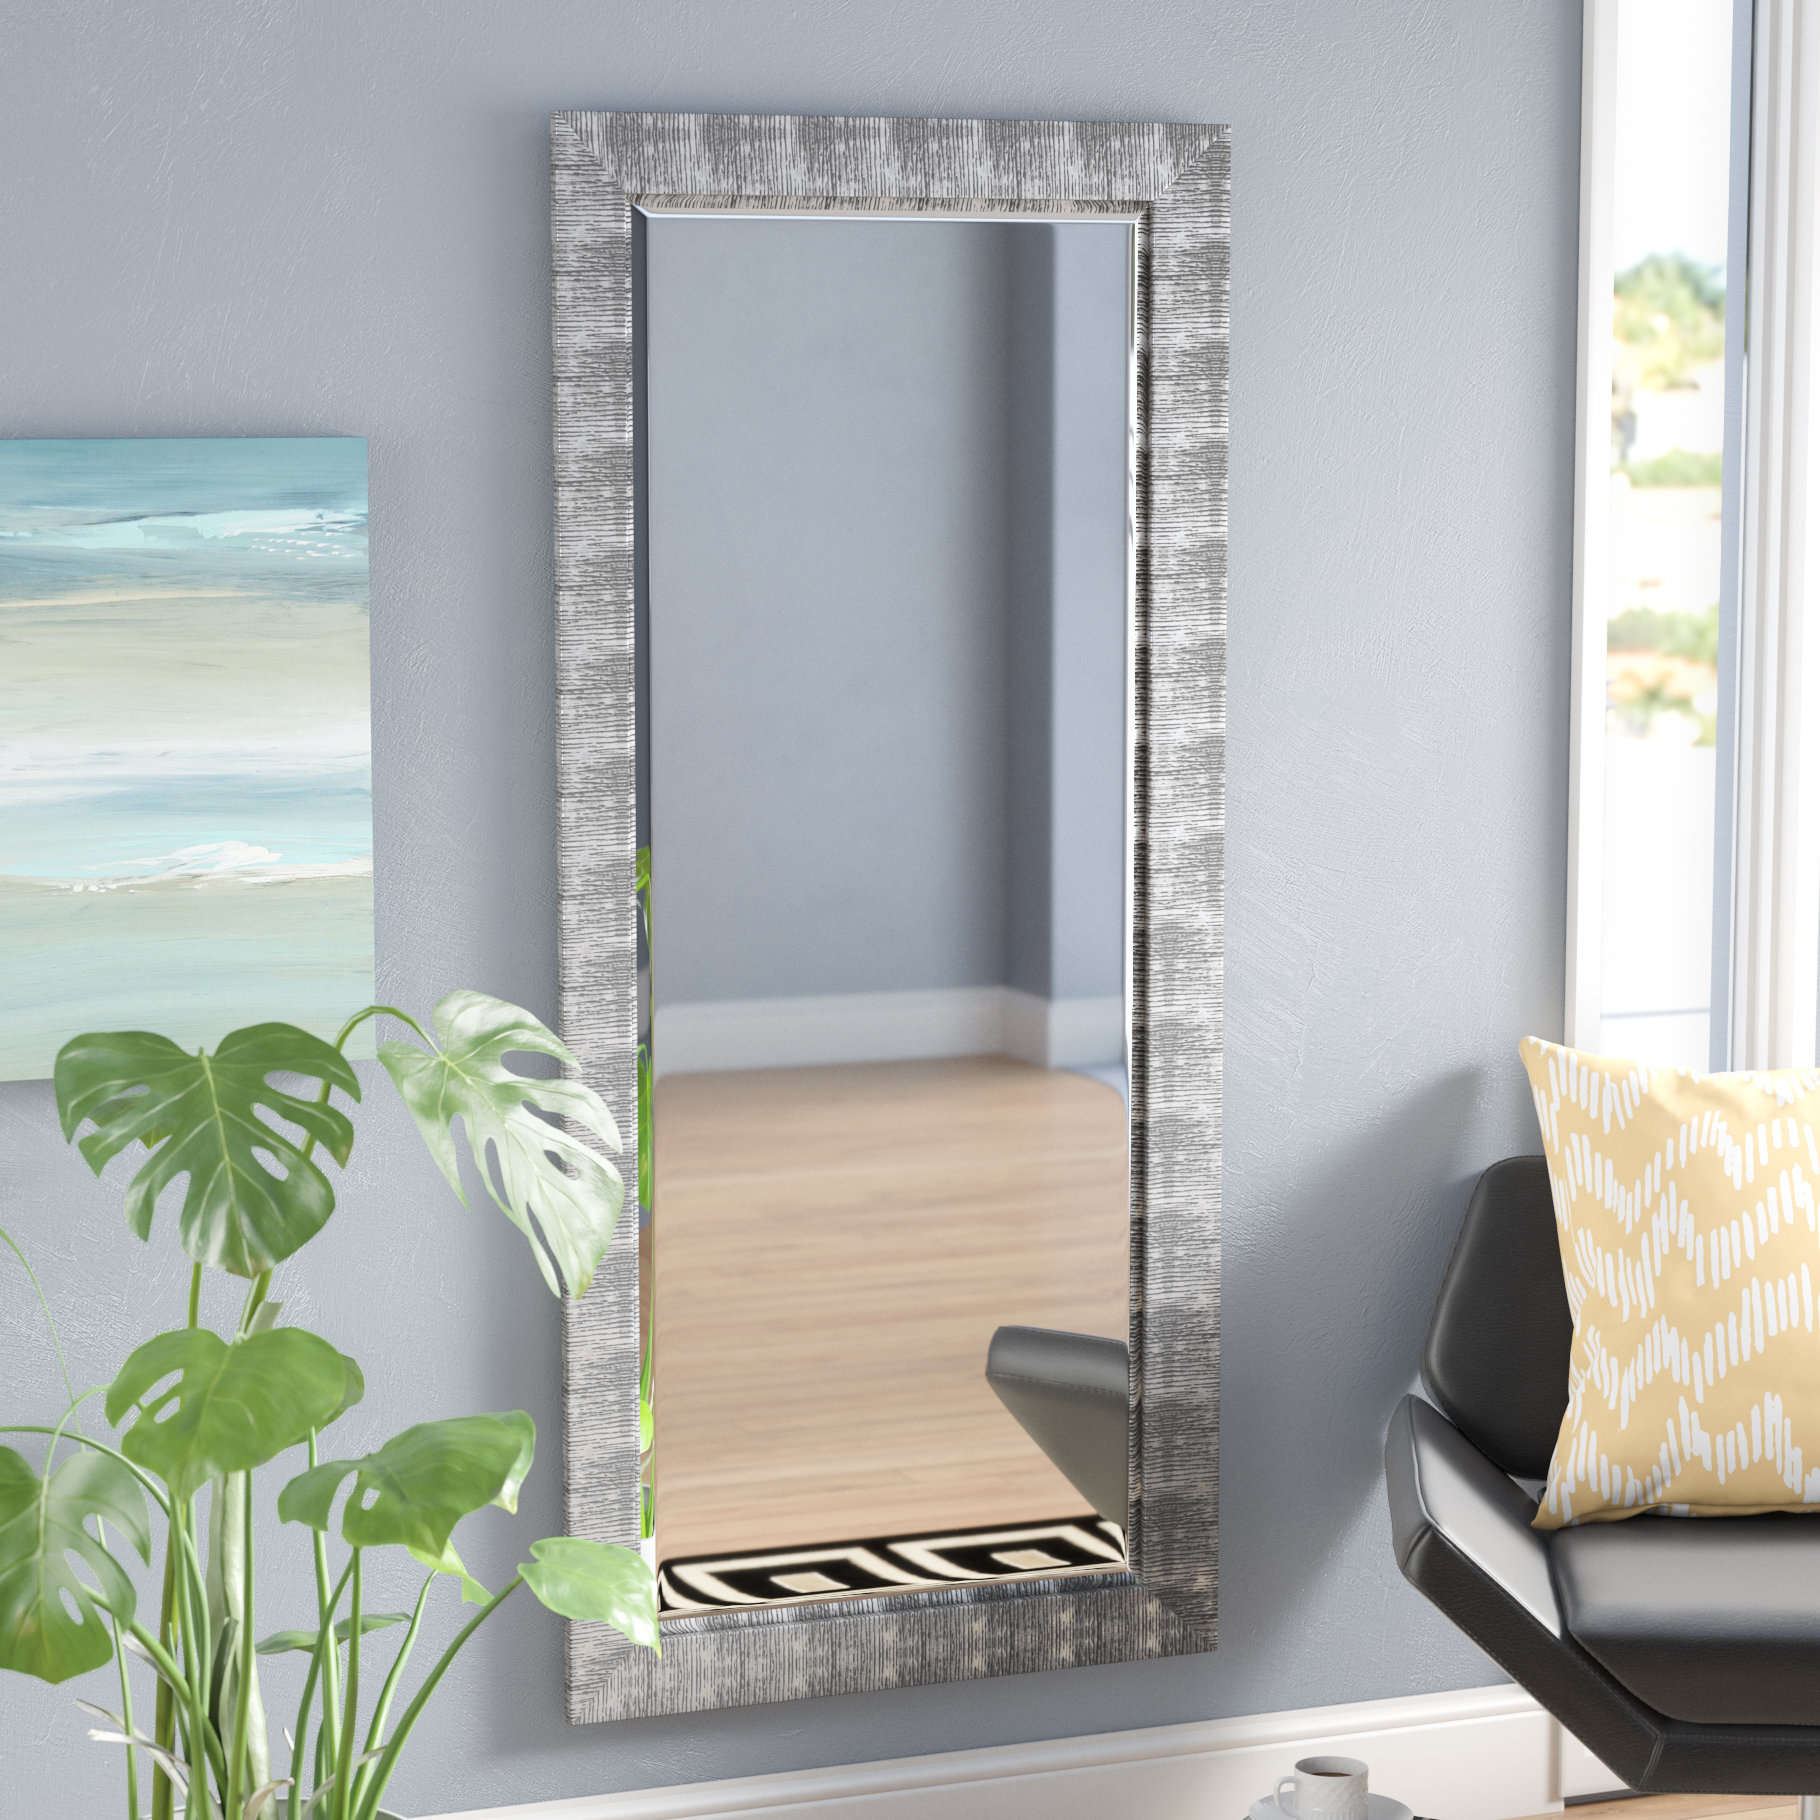 Grain Texture Modern & Contemporary Beveled Wall Mirror Intended For Epinal Shabby Elegance Wall Mirrors (View 16 of 20)